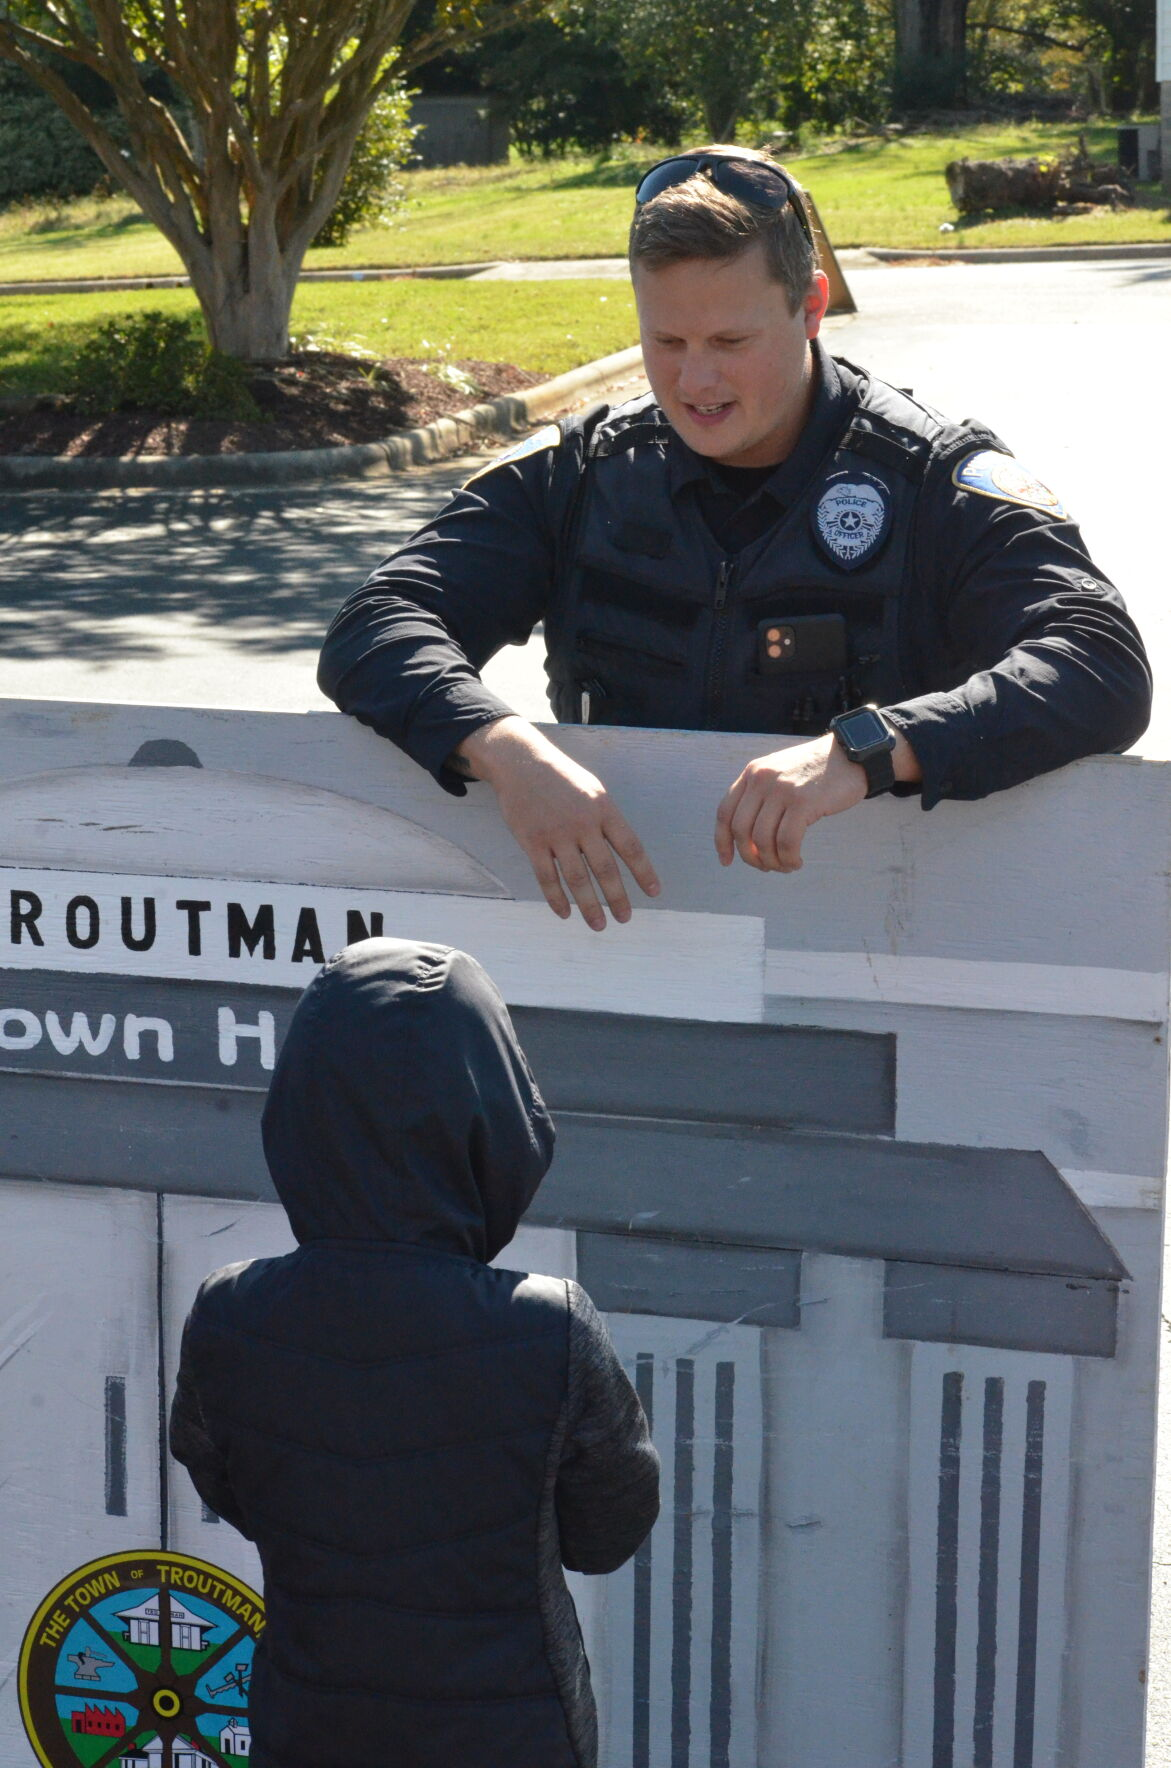 Officer Daniel Bova talks to Wyatt Adams during Troutman's National Night Out event on Saturday.